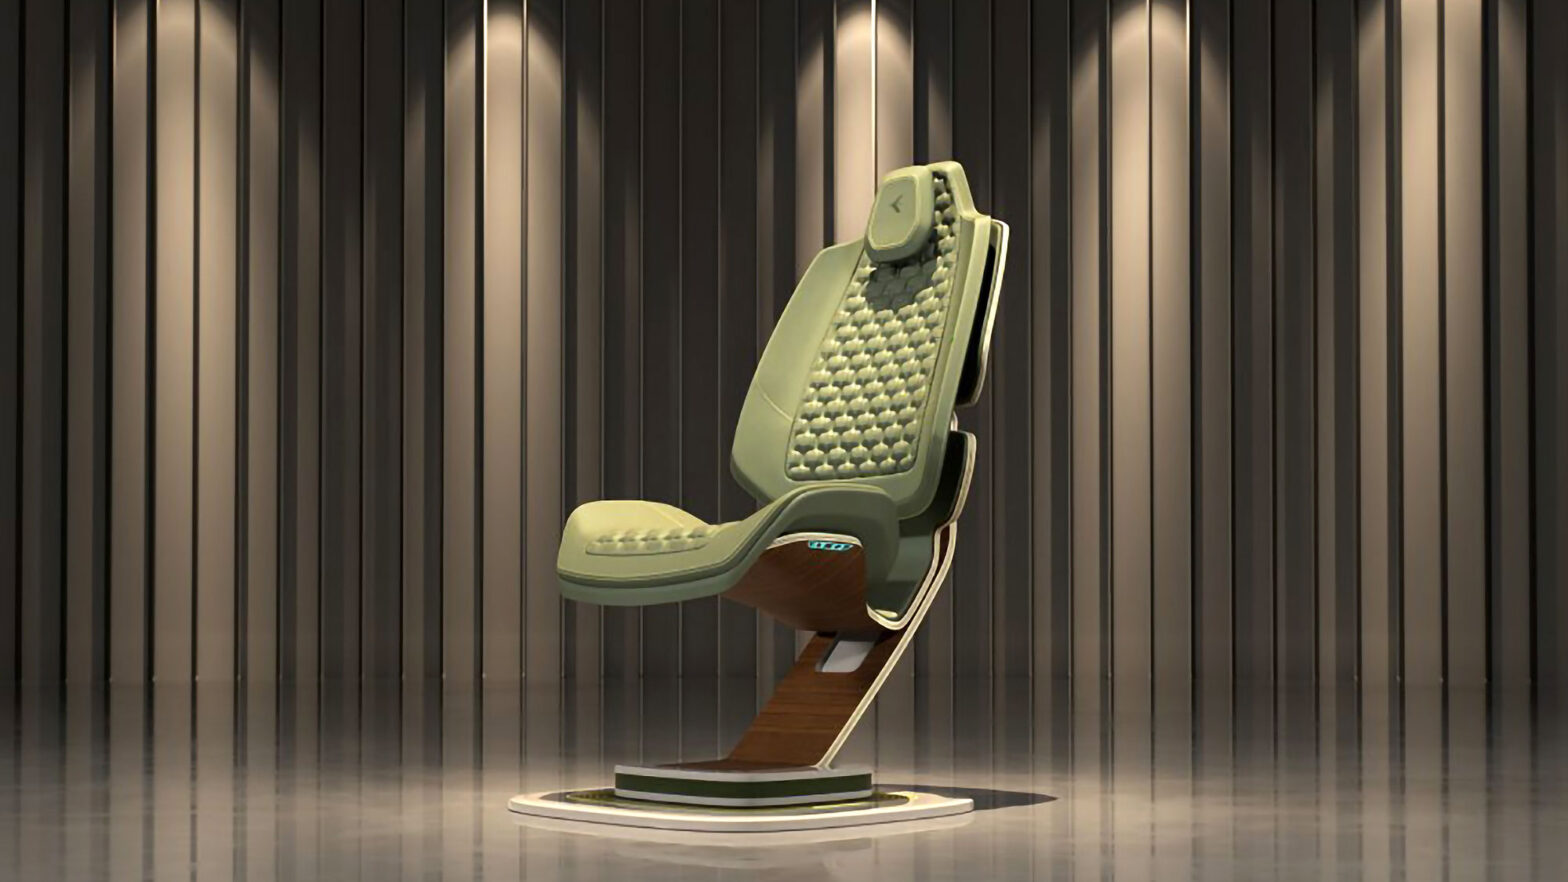 Embraer Paradigma Chair